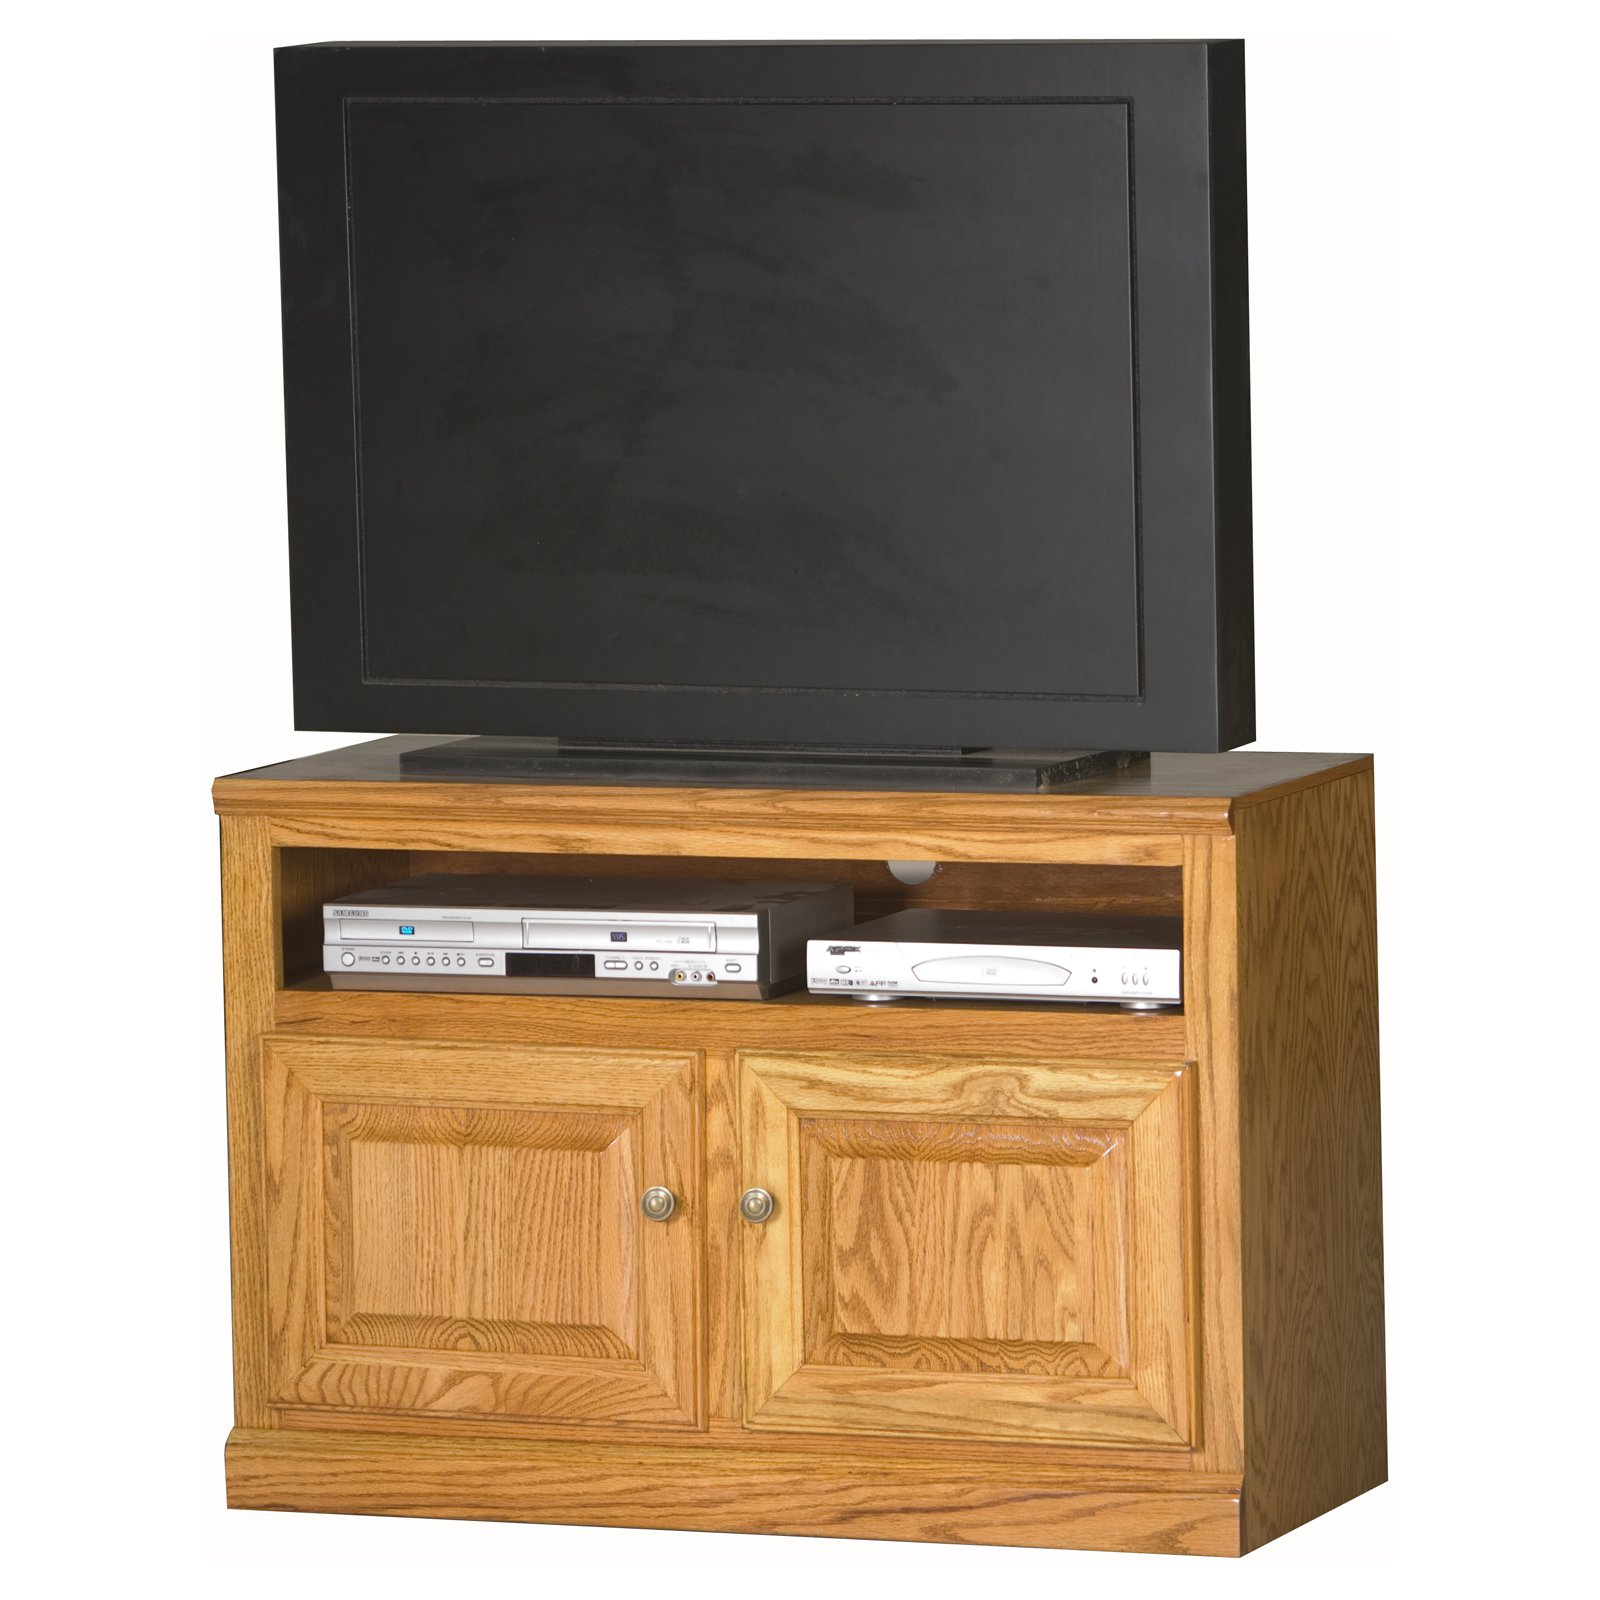 Eagle Furniture Classic Oak Customizable 39 in. TV Stand